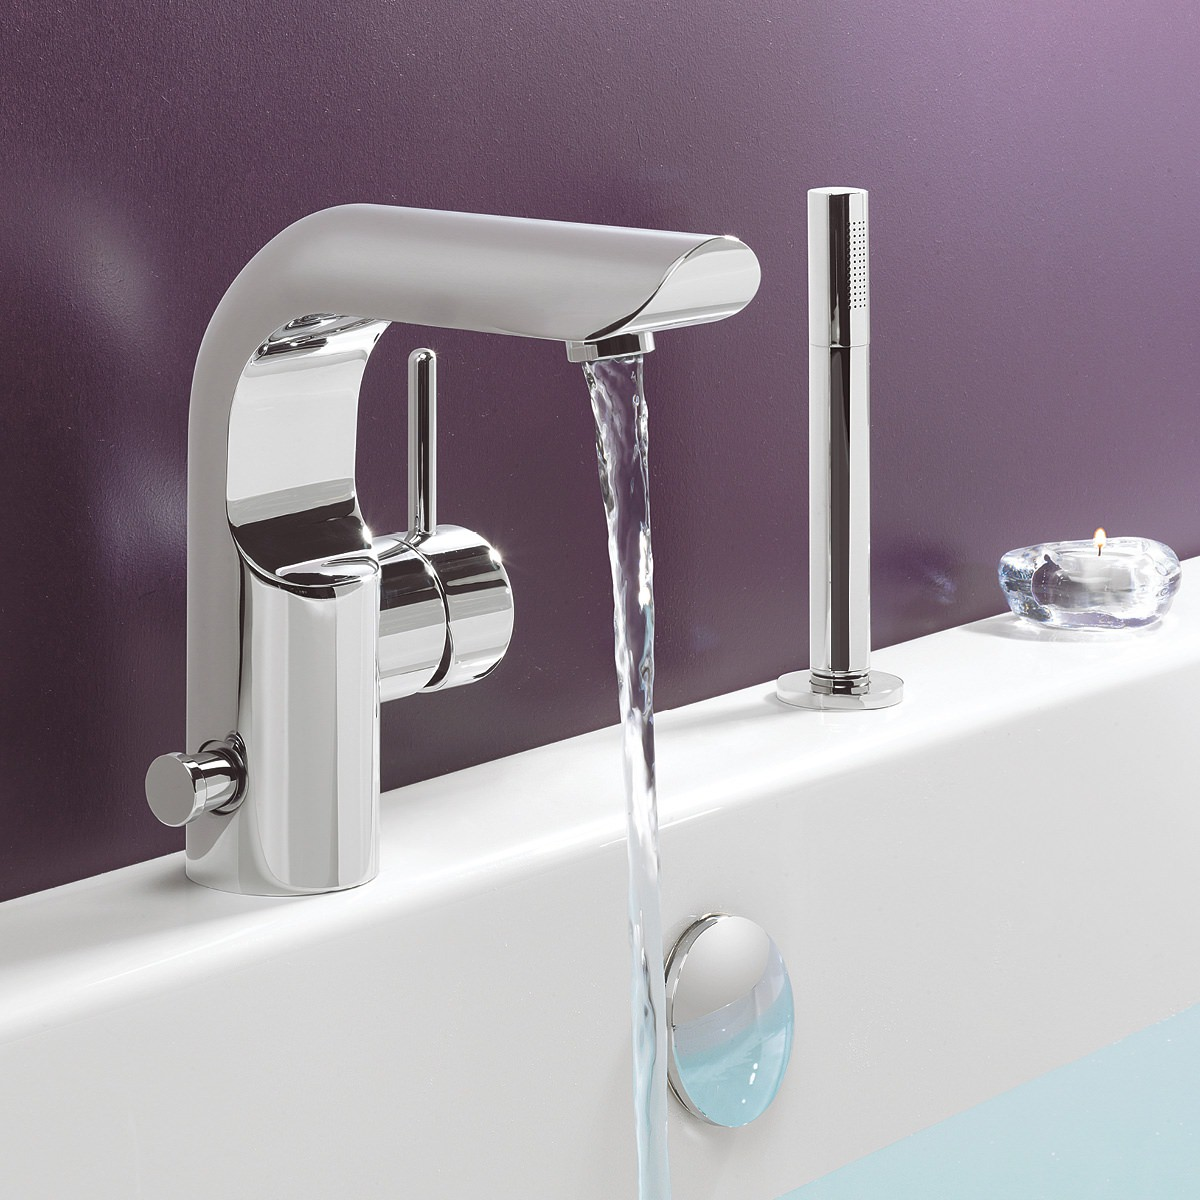 Crosswater elite bath shower mixer tap with kit el410dc for Bathroom taps